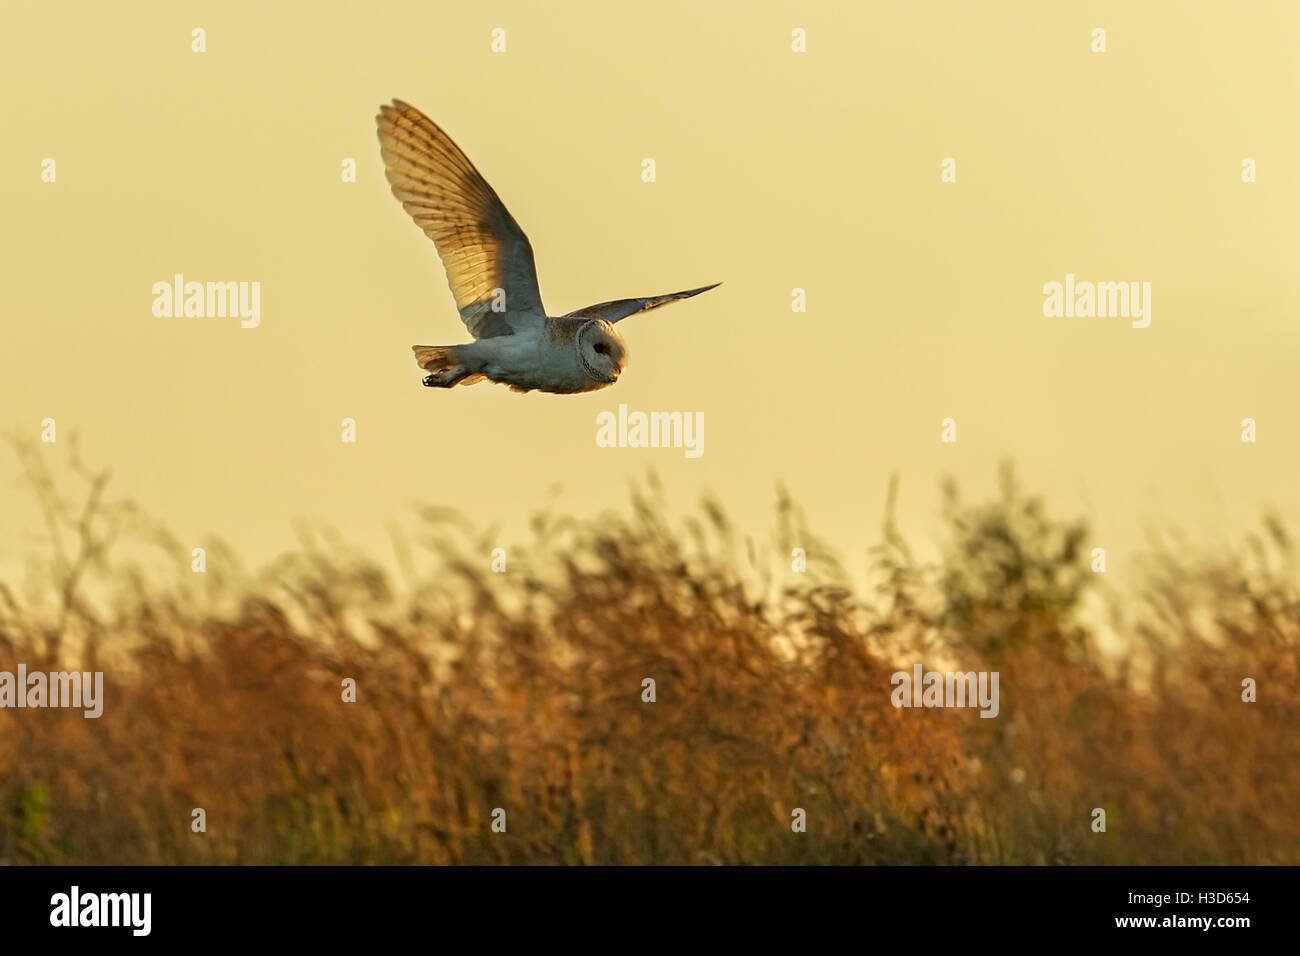 A barn owl in flight as it hunts by day, Norfolk, England Stock Photo